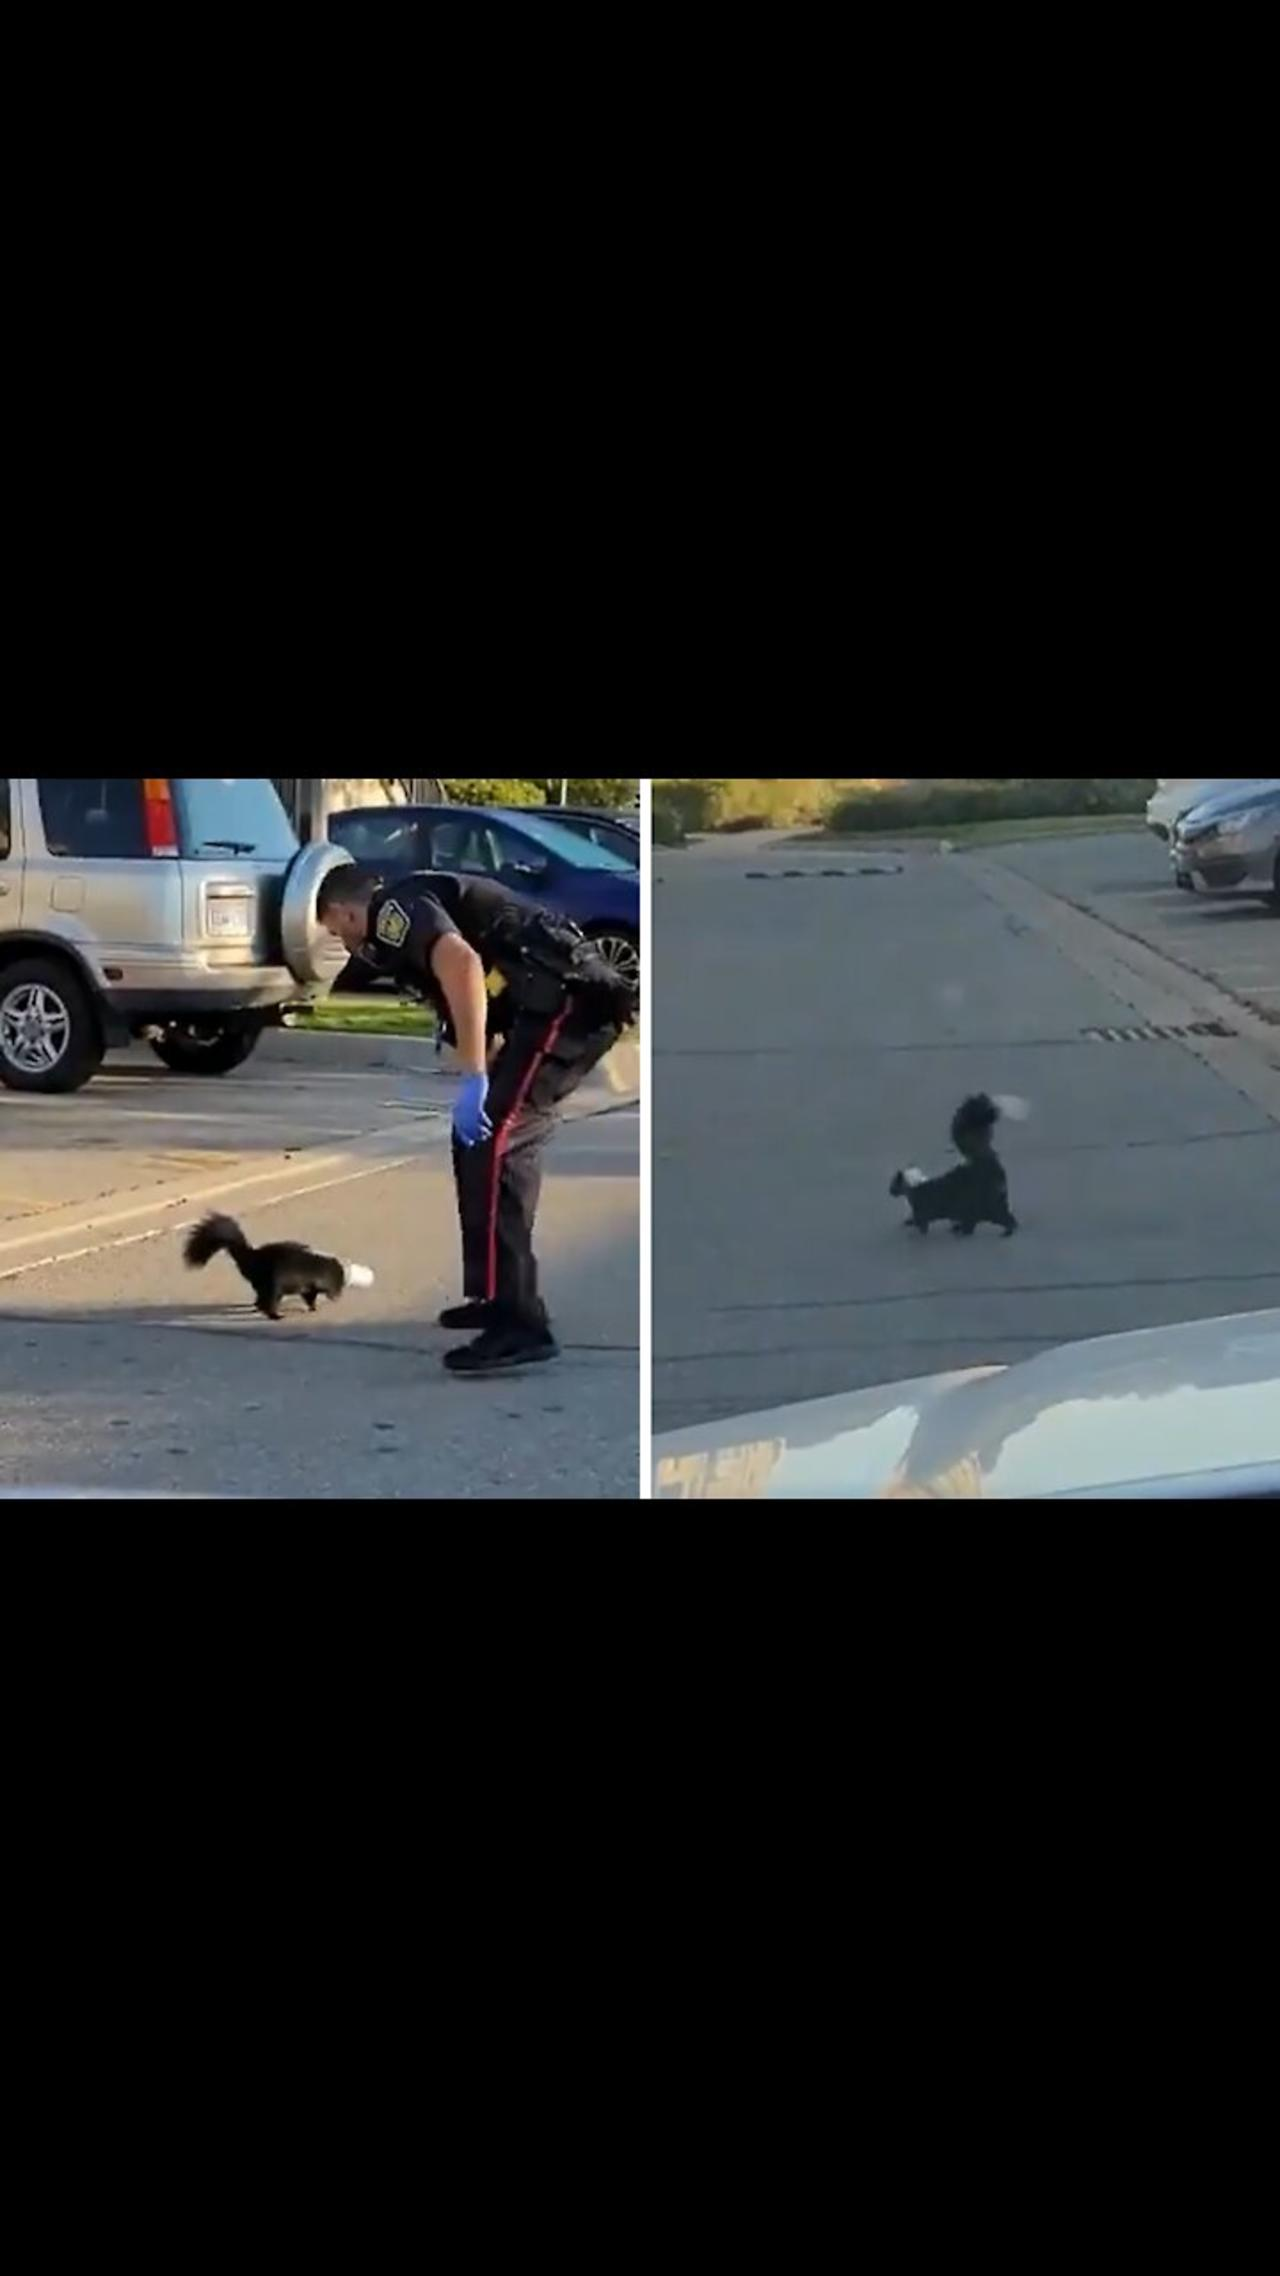 Police officer rescues skunk with cup stuck on its head